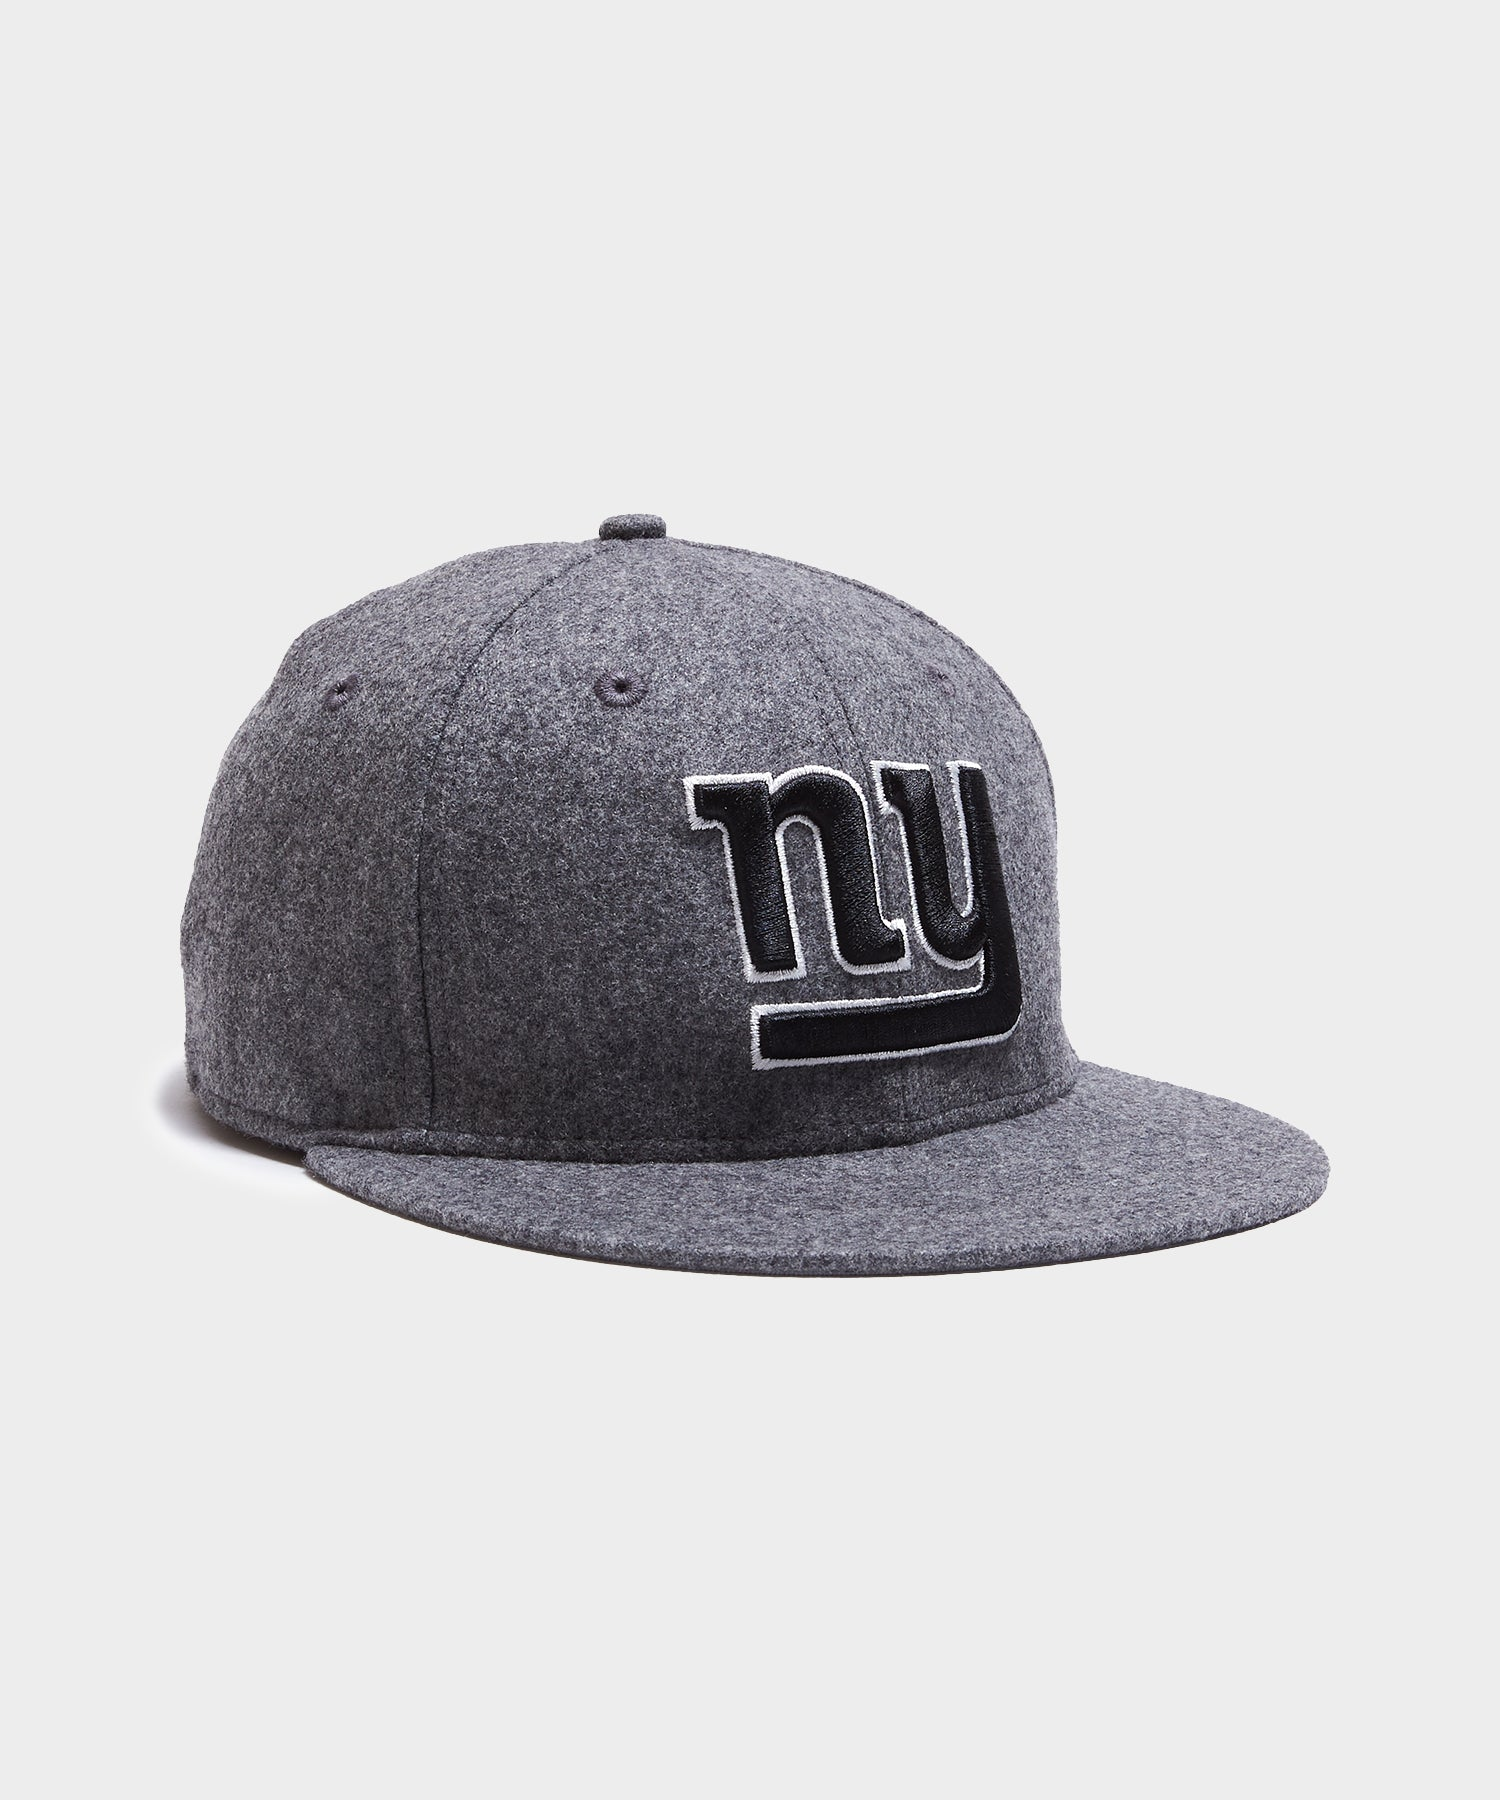 Todd Snyder + New Era New York Pack NY Giants